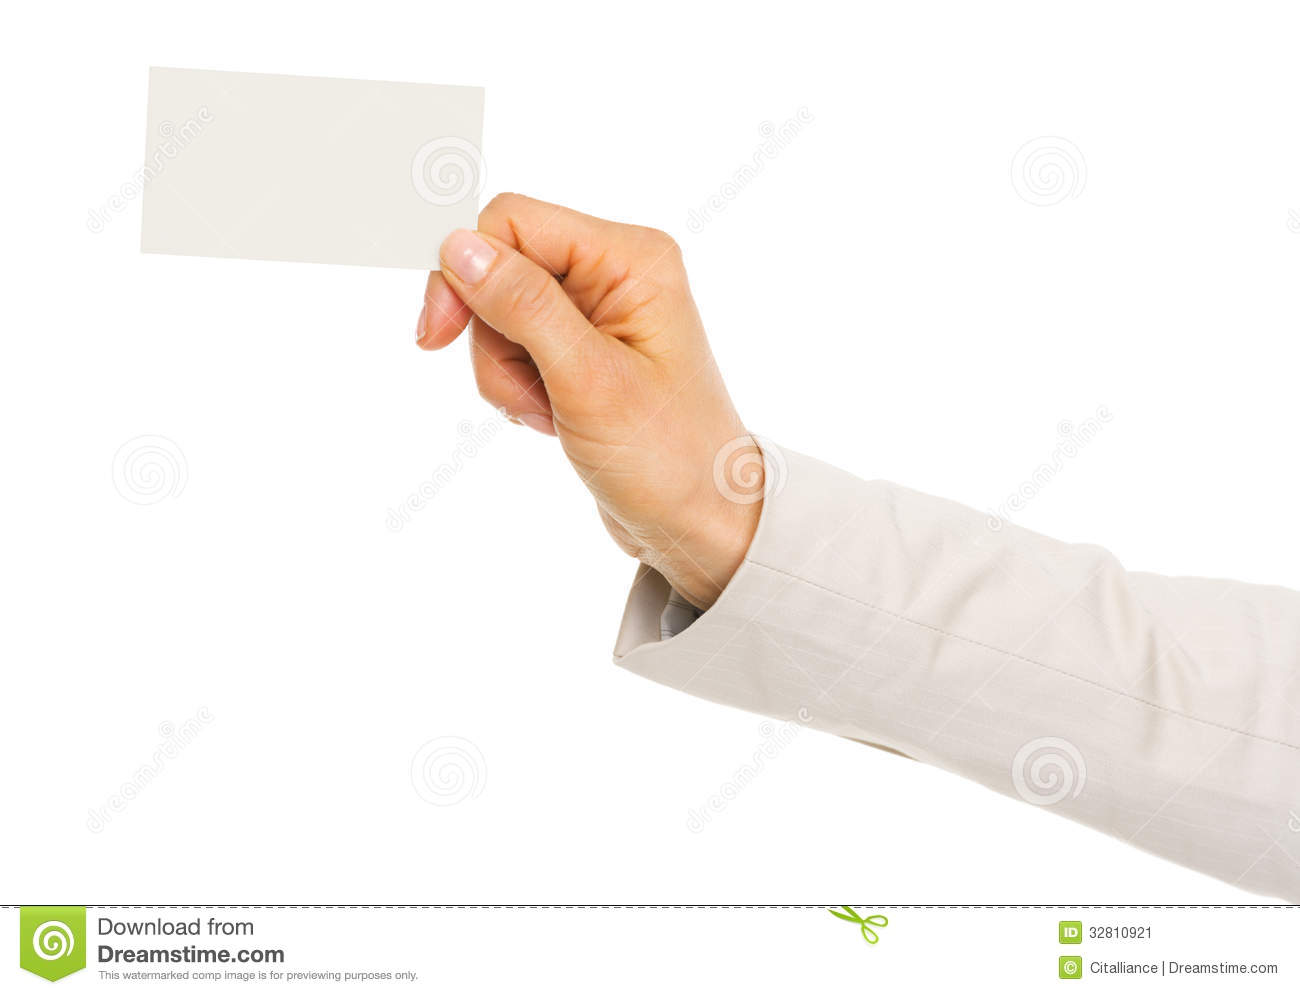 high resolution map of the united states with Stock Image Closeup Hand Business Woman Holding Business Card High Resolution Photo Image32810921 on Who Owns Who also Stock Photo Full Length Portrait Happy Business Woman Dancing High Resolution Photo Image32810890 additionally Royalty Free Stock Image People Work Construction Sign Image16507626 together with Stock Image Evil Man Image27318091 as well Stock Photos Futuristic Technology Background High Resolution Copy Illustration Image33984023.